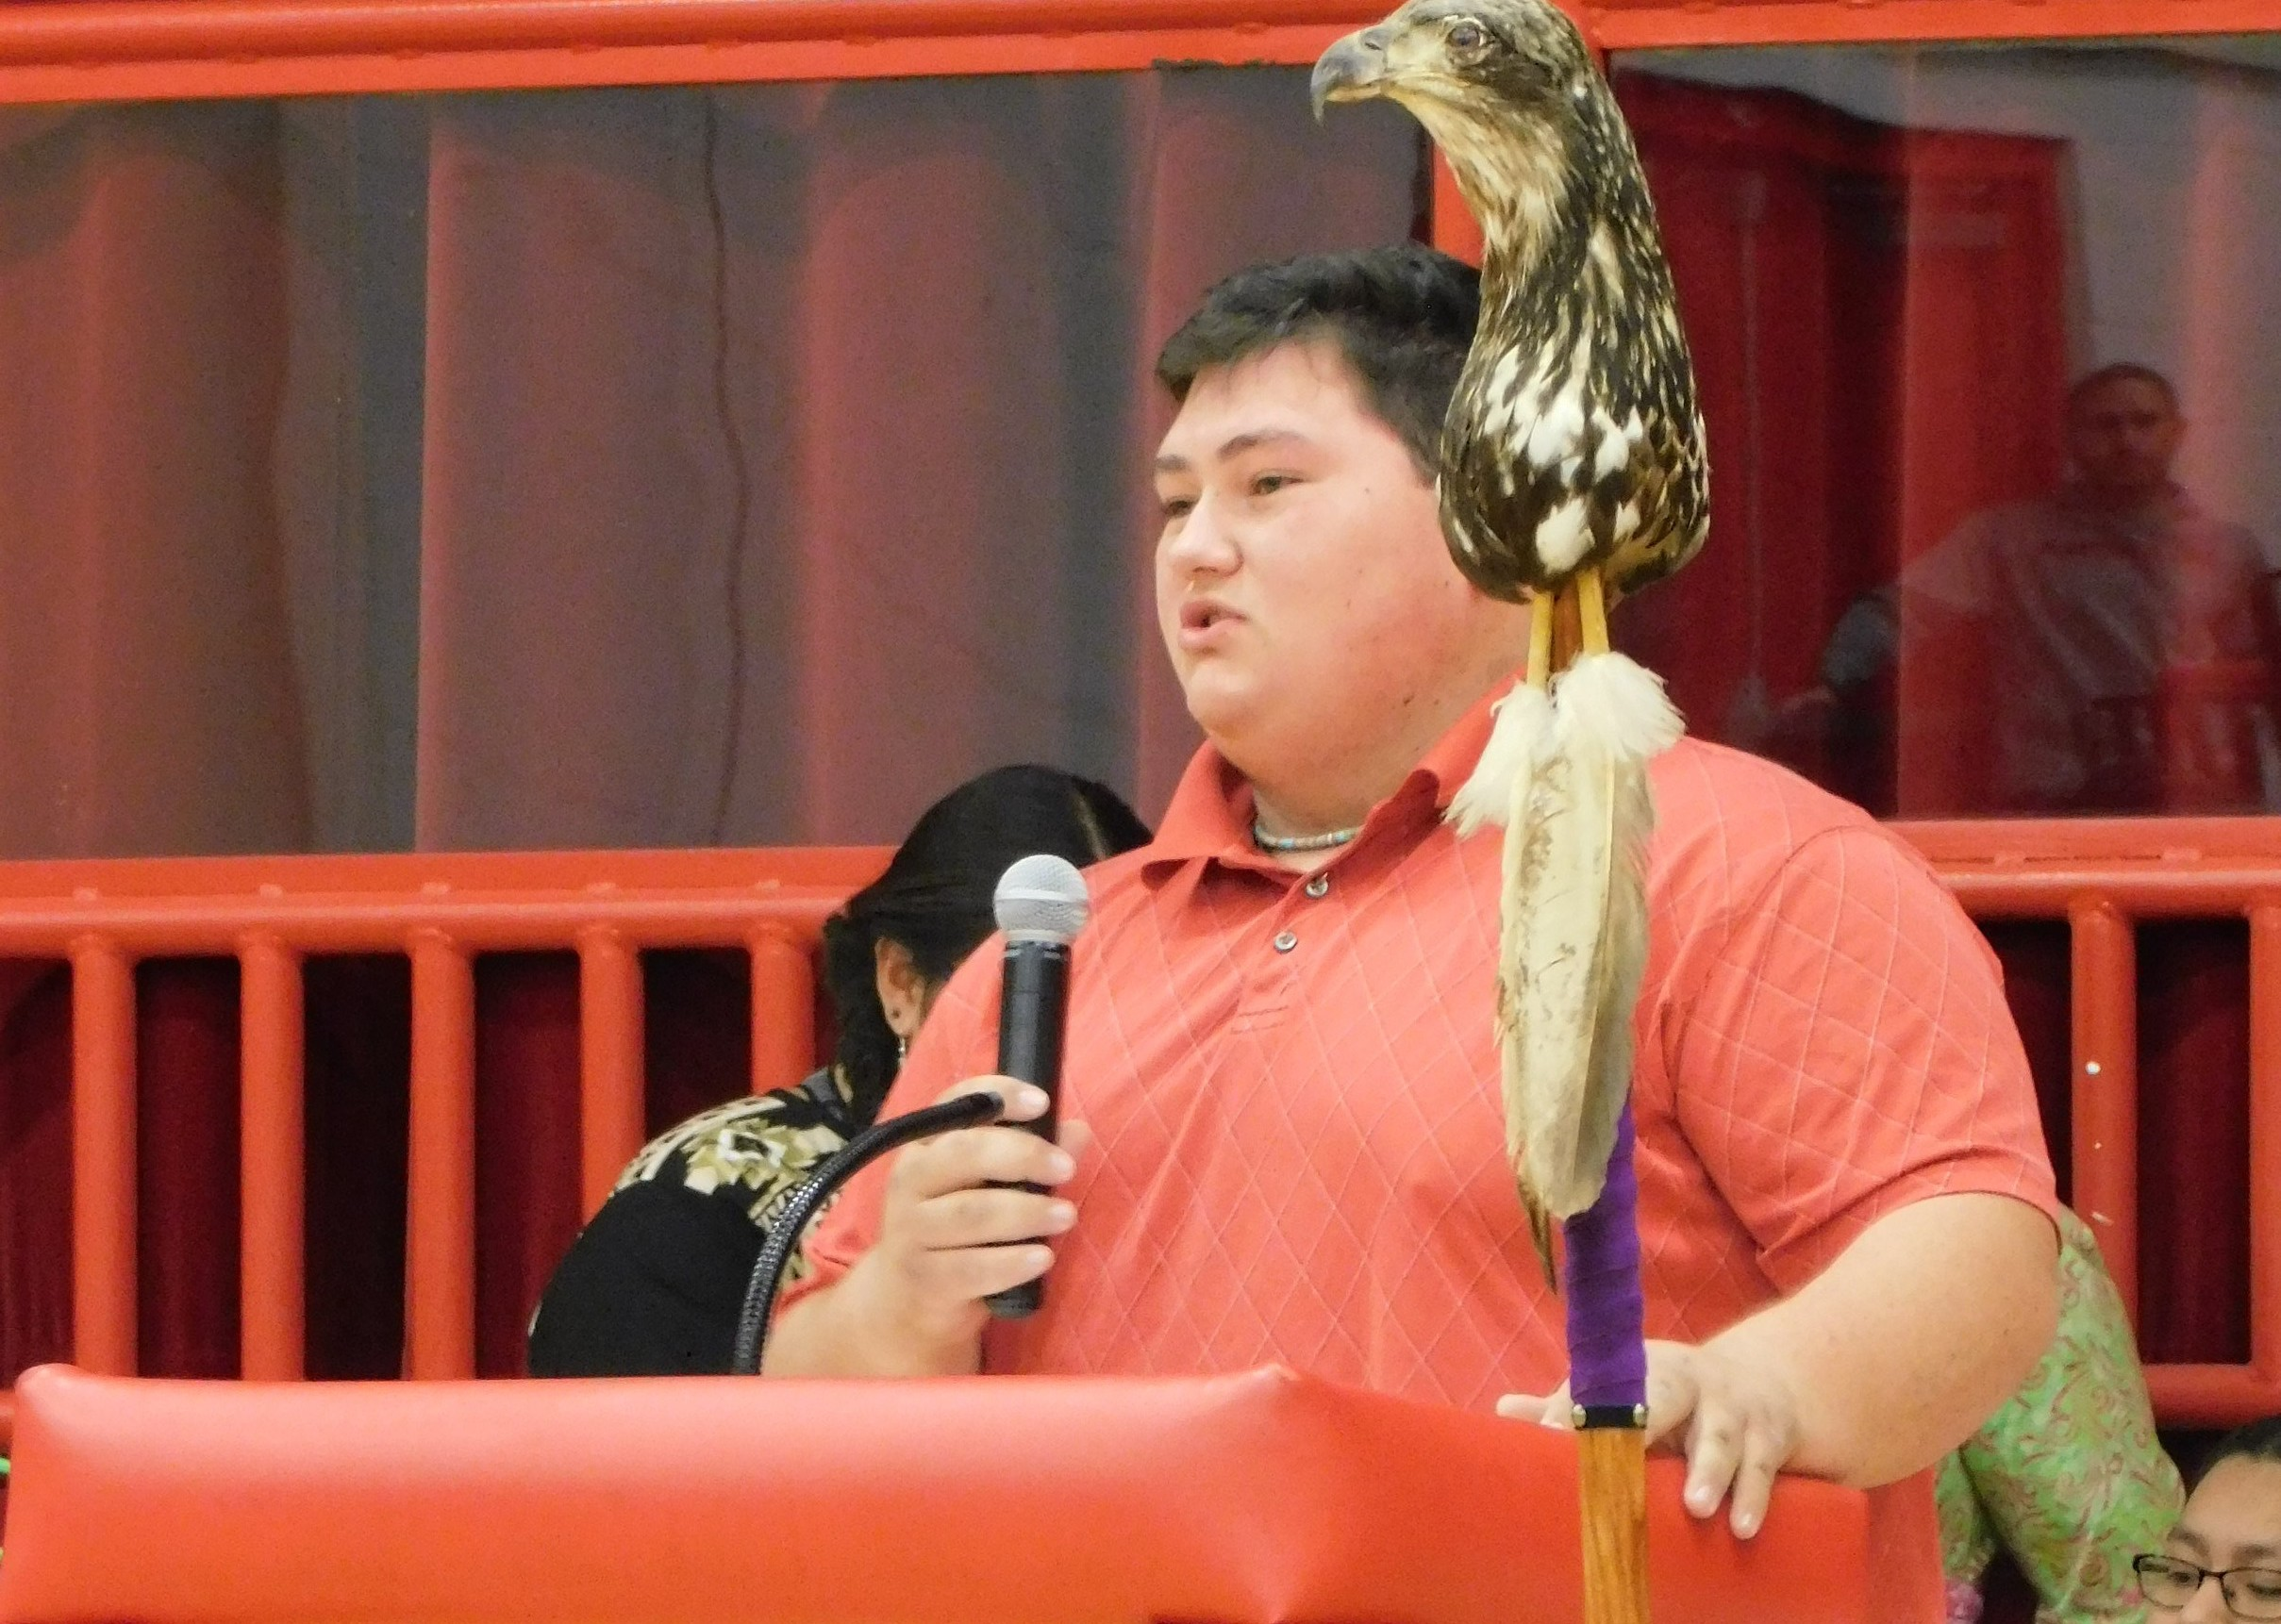 Gavin White, Hilldale senior and resident of the Native American Student Association, welcomes students to the assembly.